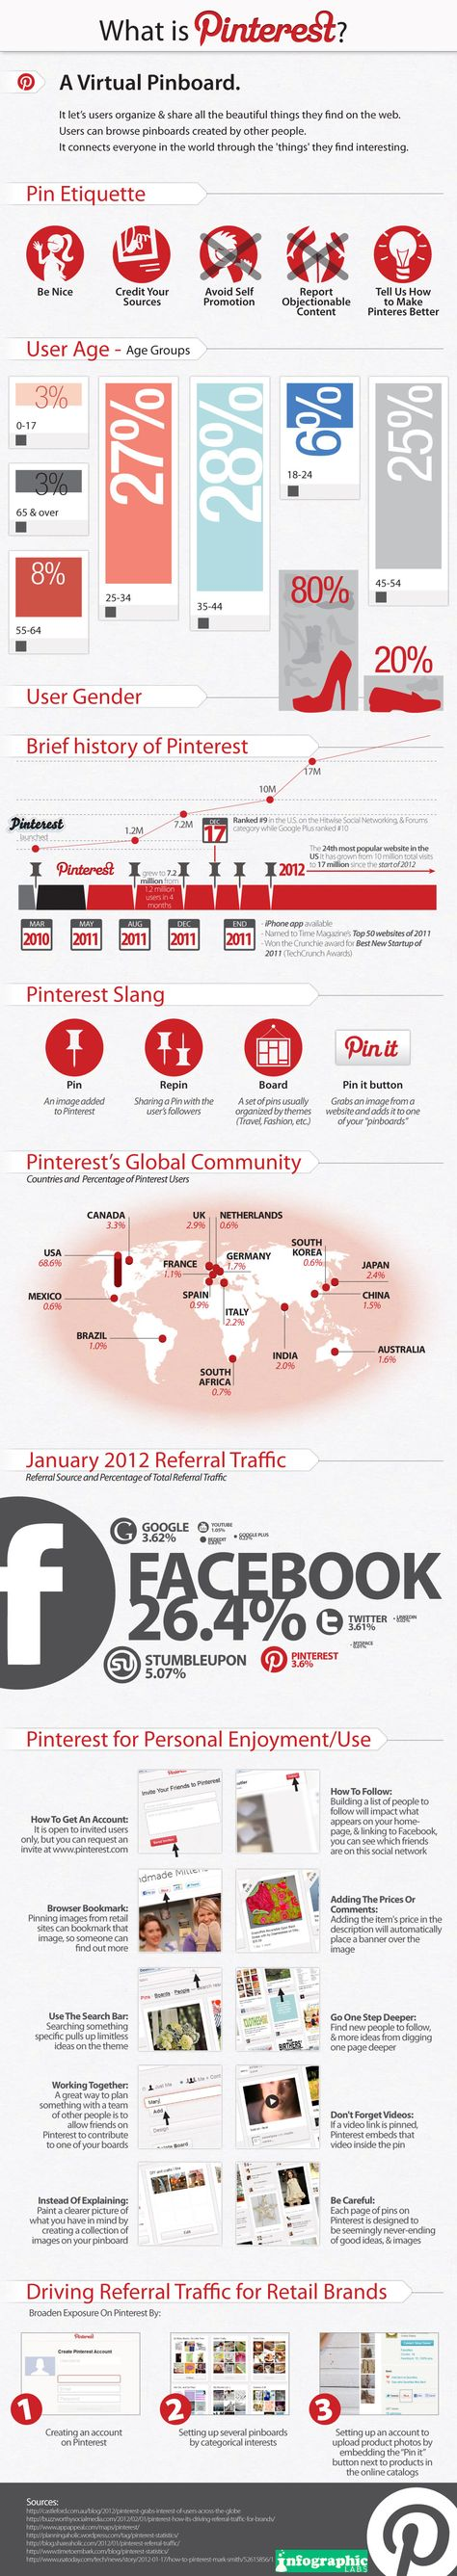 What is #Pinterest? Infographic